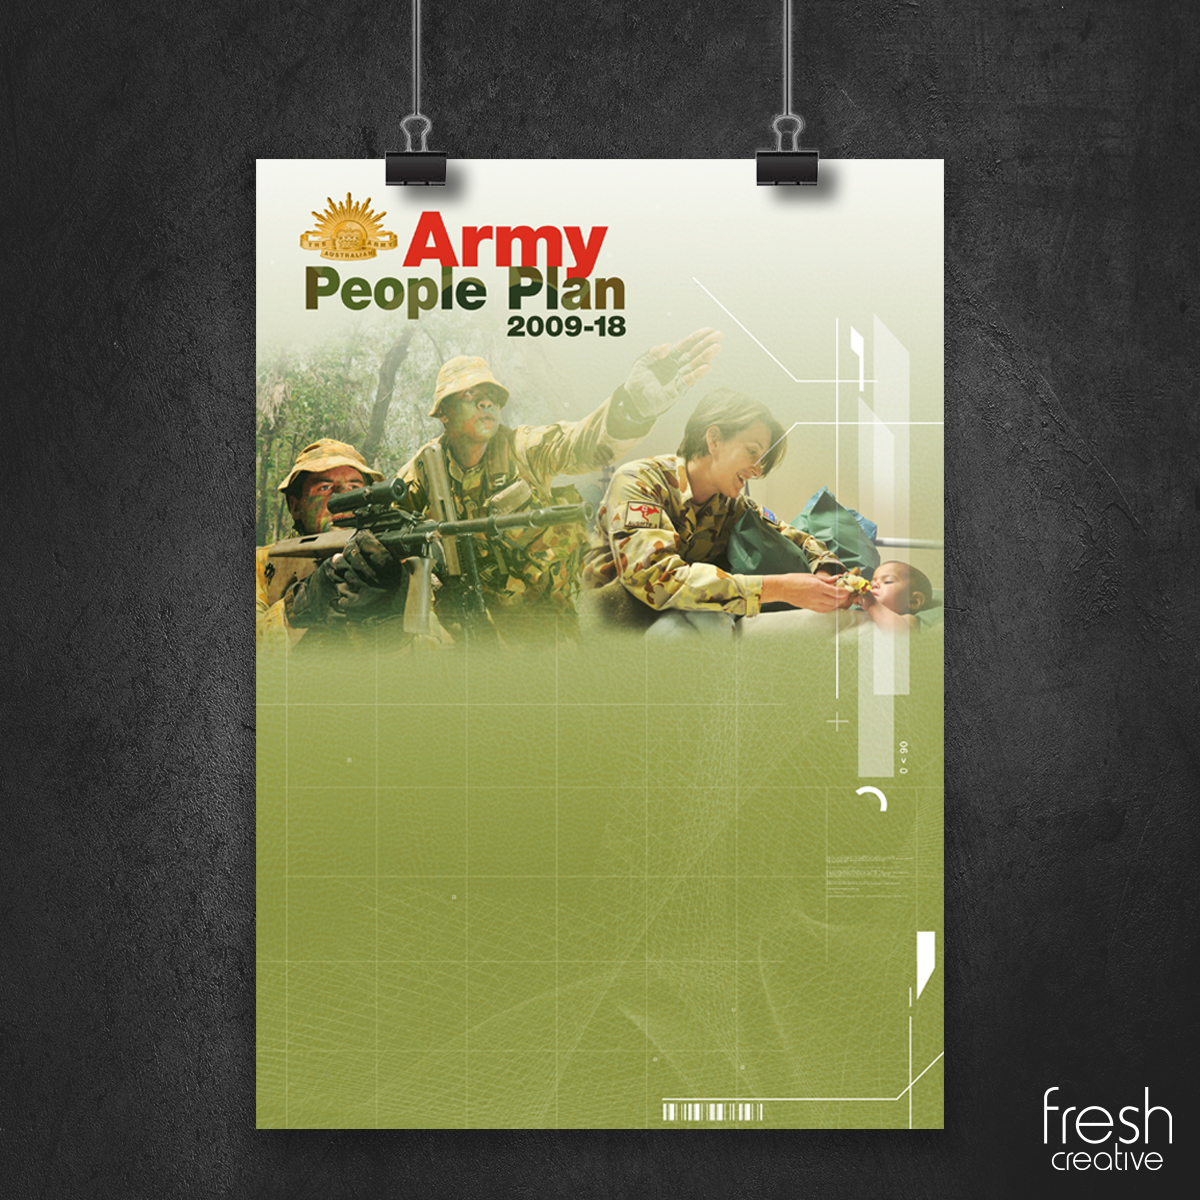 Custom made poster for the Army.